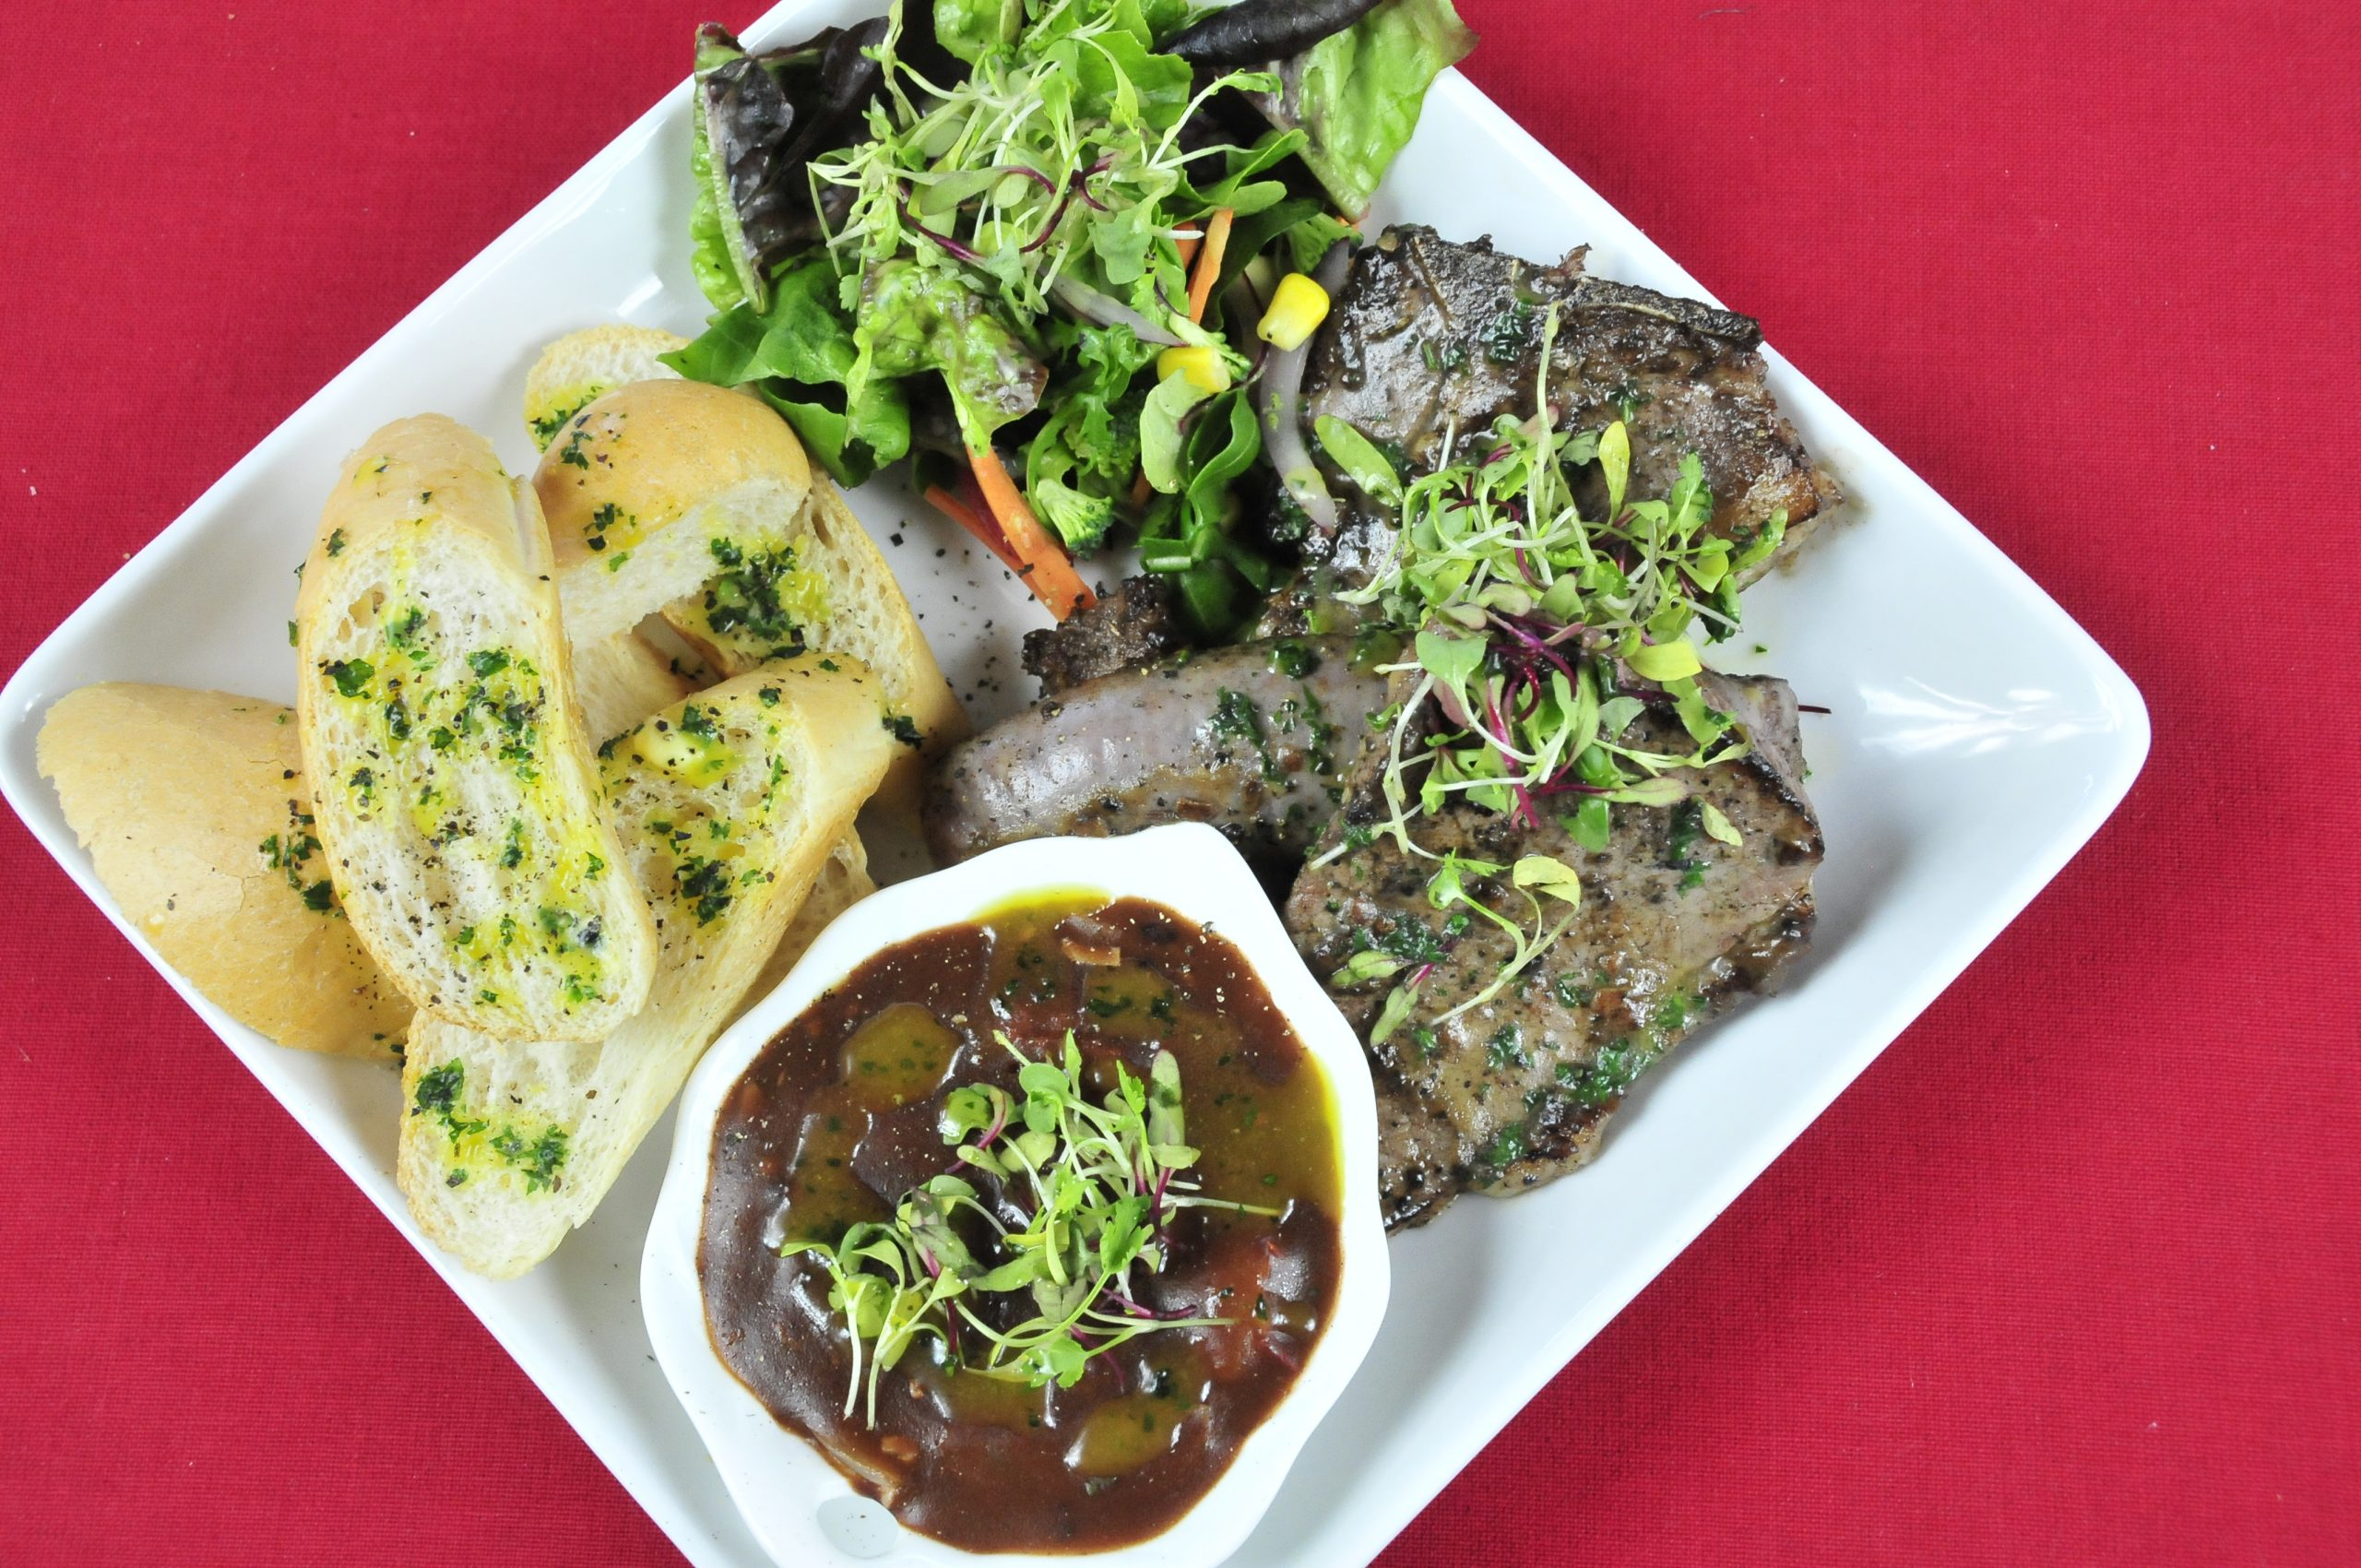 Sunninghill Square | Wranglers, American Food in South Africa